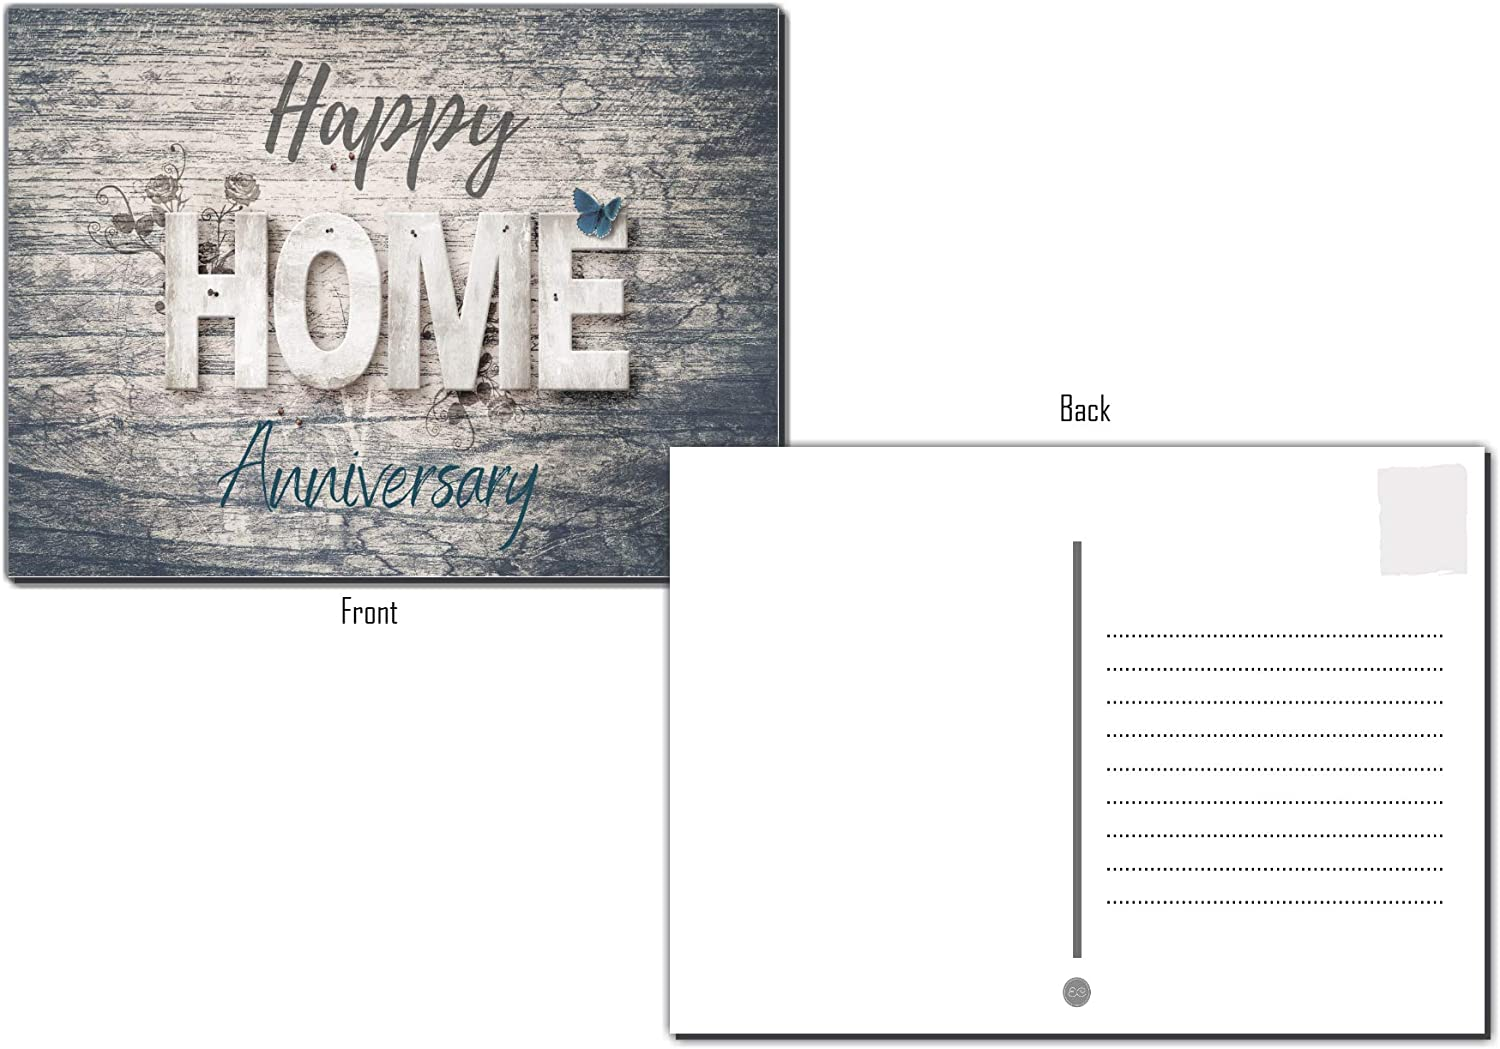 25 Happy Home Anniversary Realtor Chalk Cards Blank Greeting Home Postcards,Realtor Gifts Welcome Home Cards Vintage Bulk Real State Thank You Notes